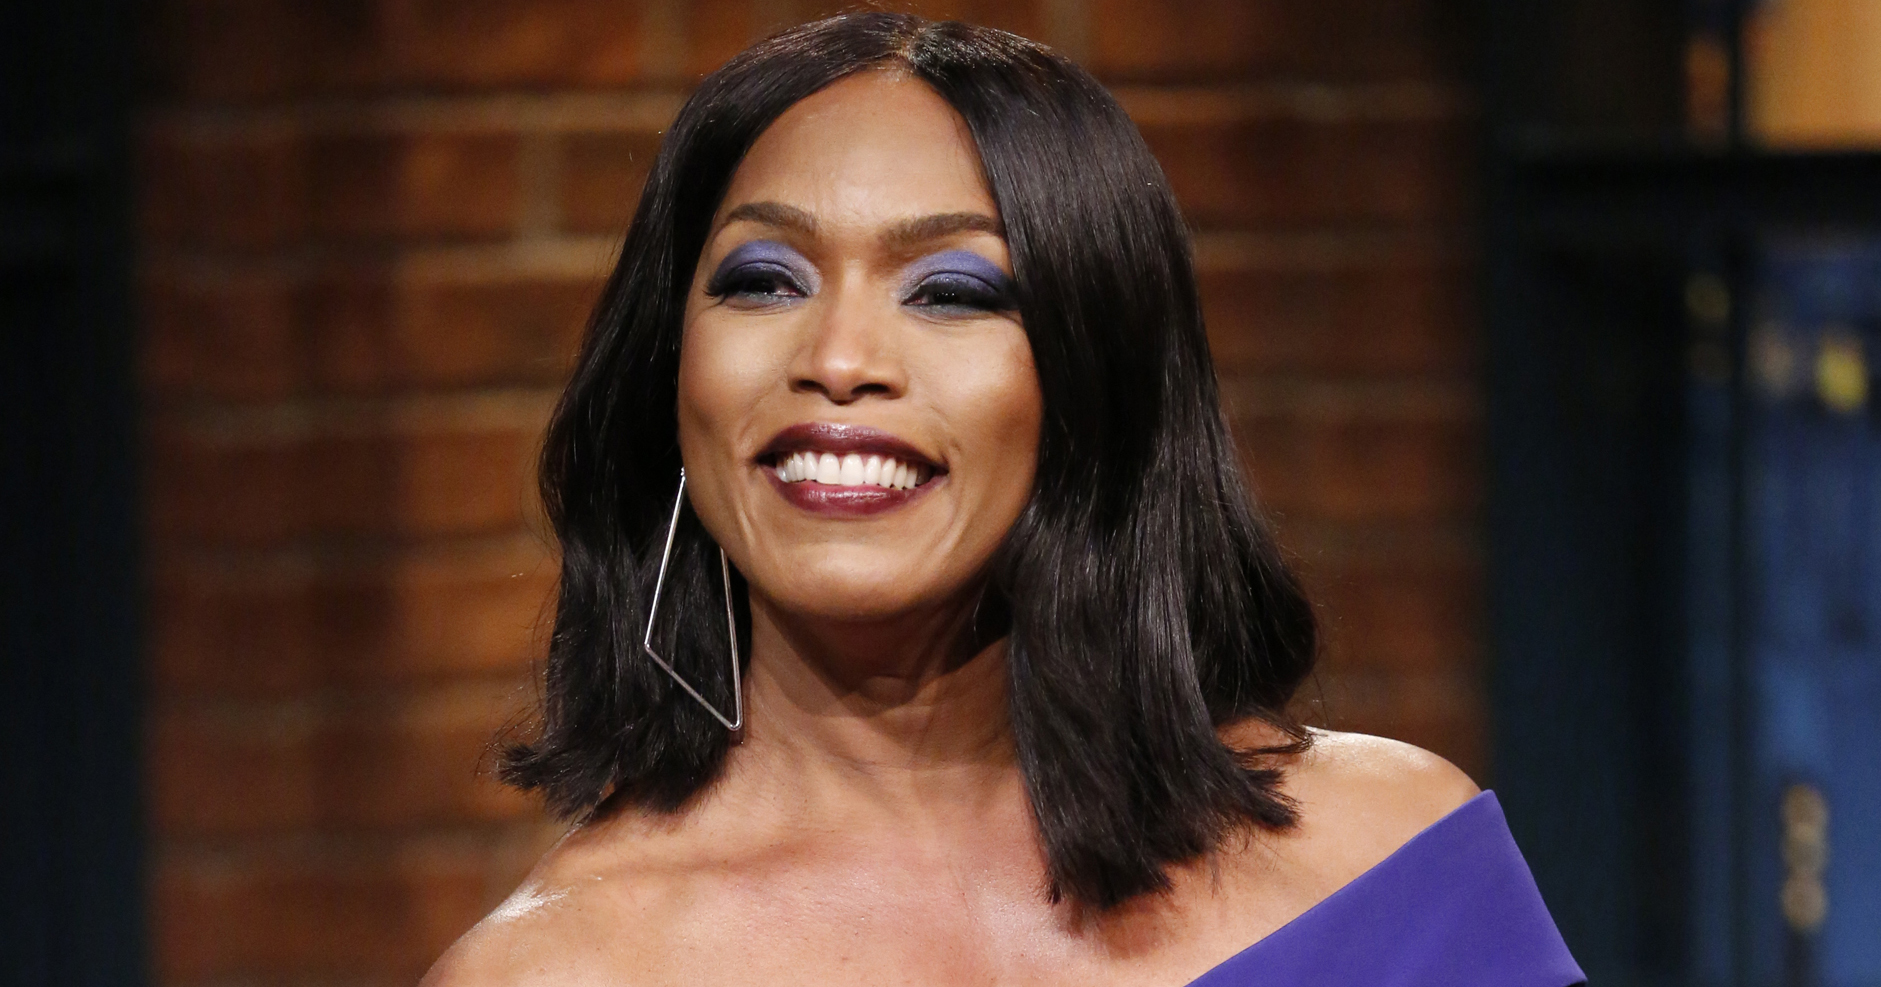 Angela Bassett during an interview on Late Night with Seth Meyers on Feb. 25, 2016 in New York City.